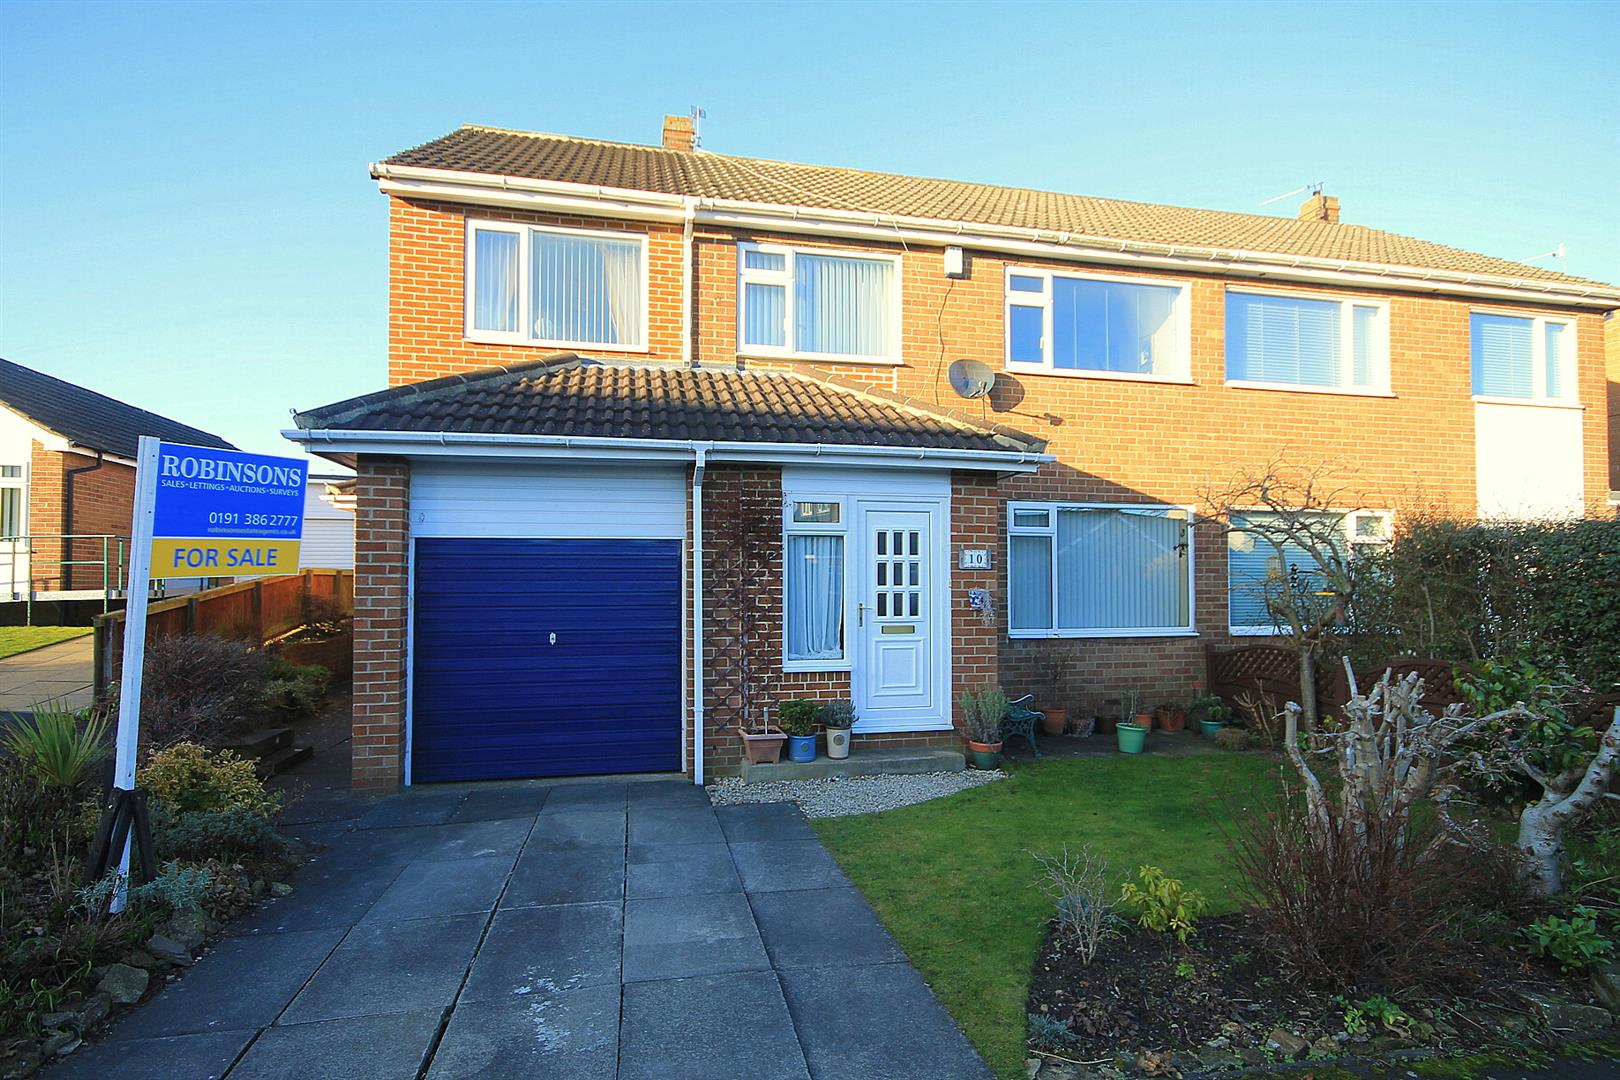 4 Bedrooms Semi Detached House for sale in Mitford Close, High Shincliffe, Durham